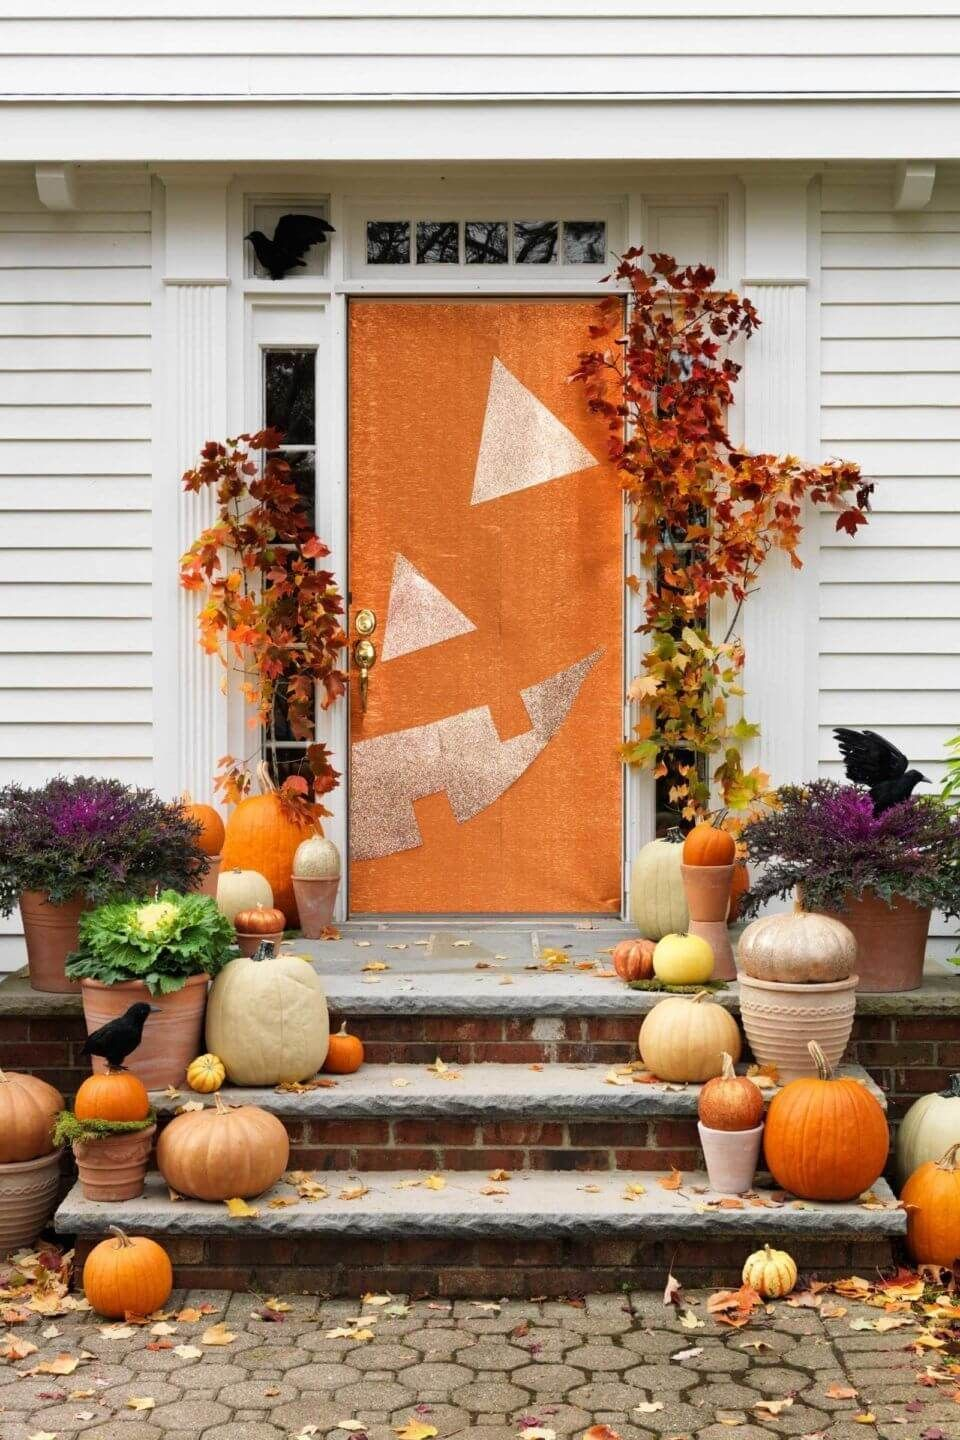 25 Adorable Fall Front Door Decor Ideas to Make a Fantastic First - Front Door Halloween Decorations